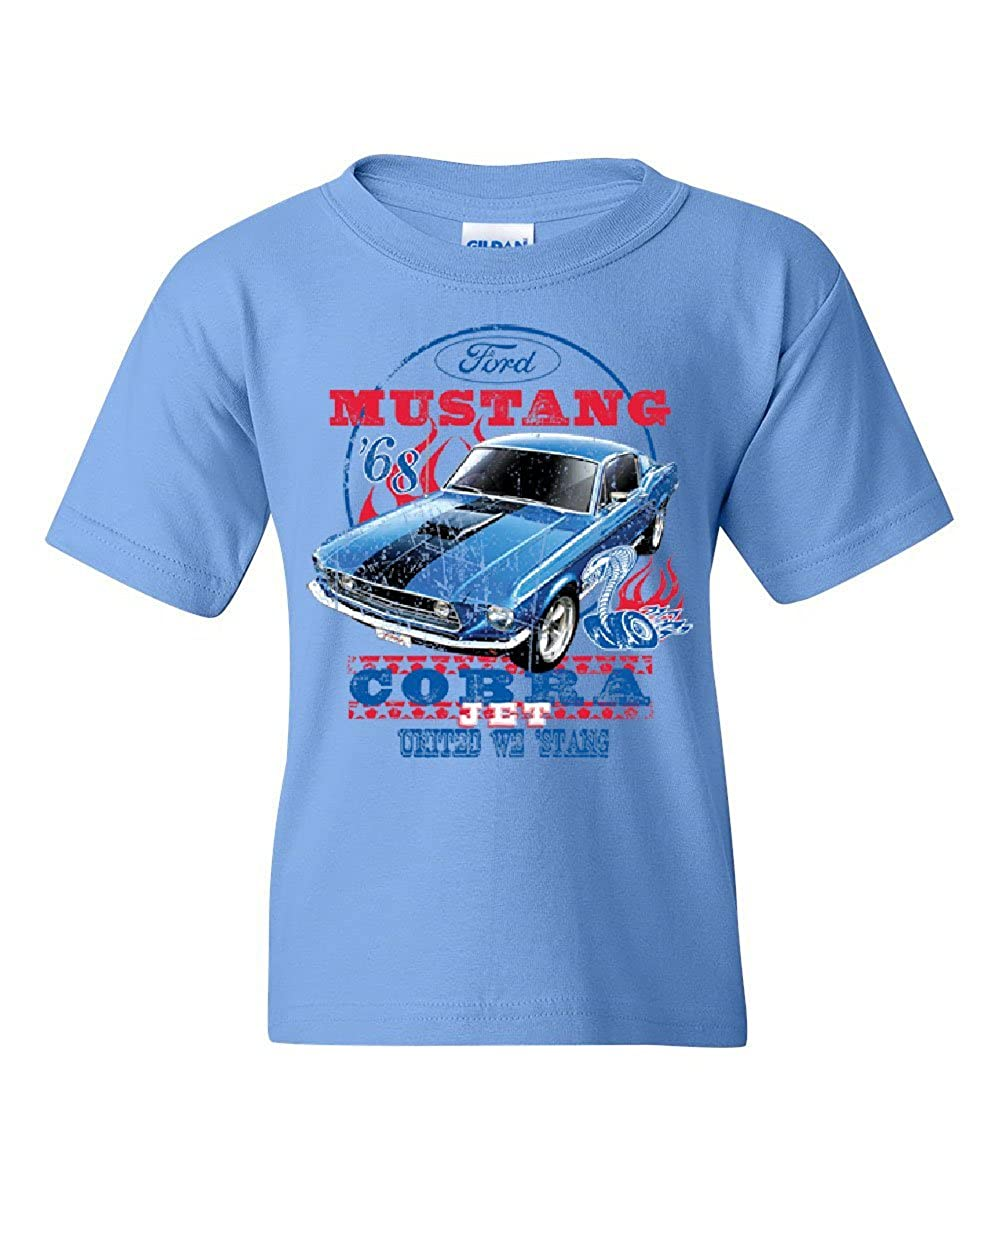 Ford Mustang Cobra 1968 Youth T-Shirt United We Stang American Classic Kids Tee